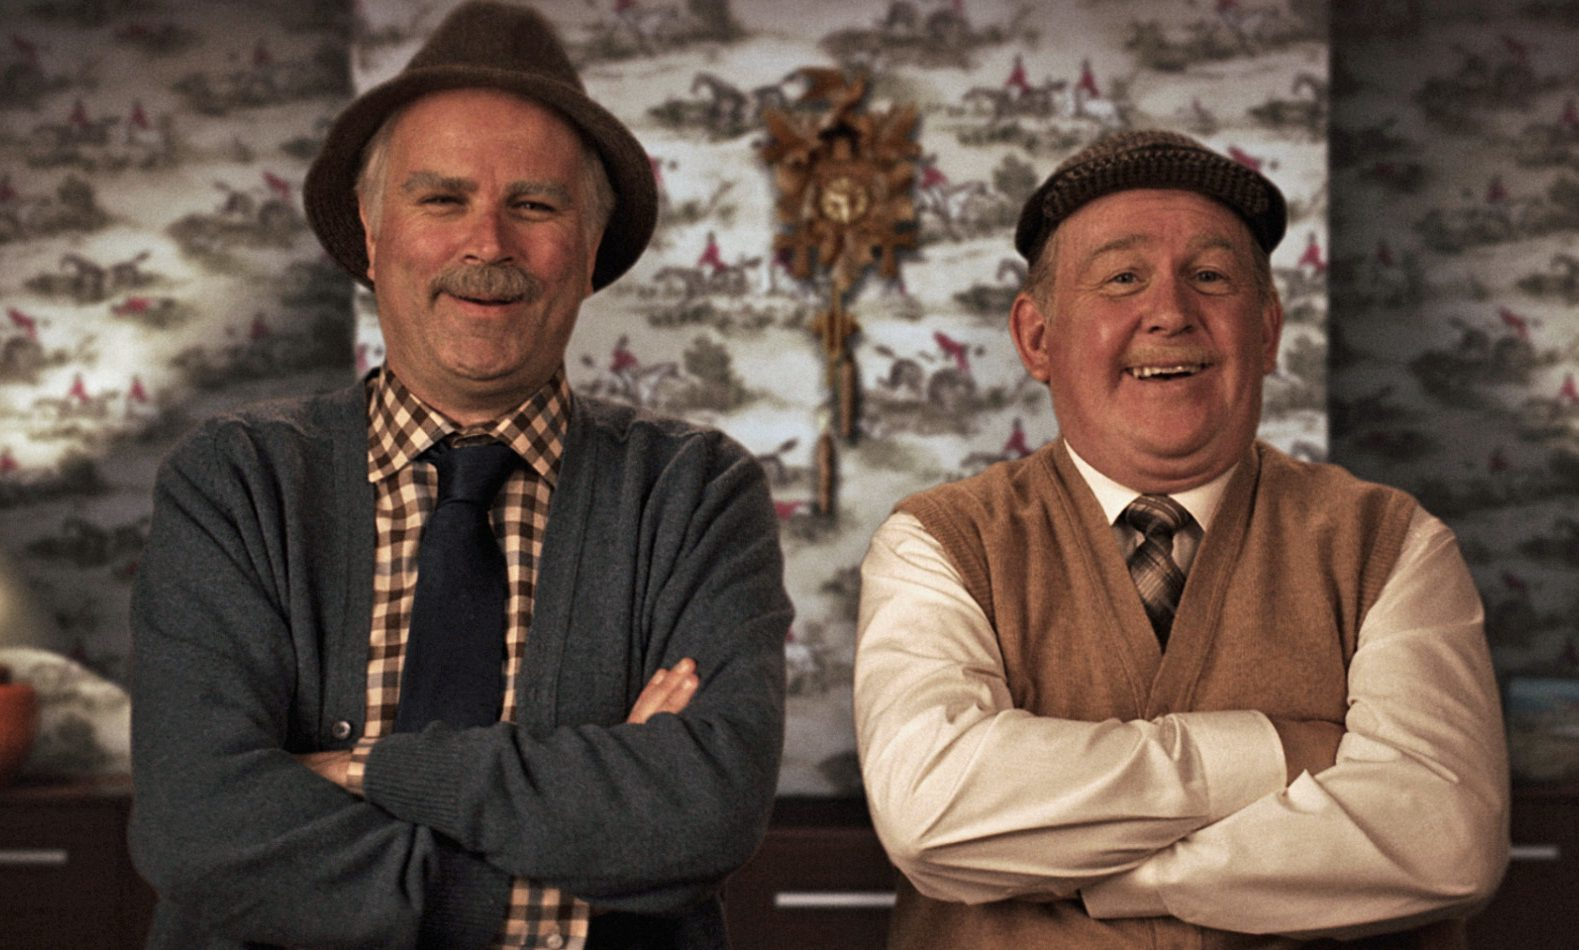 Victor McDade, played by Greg Hemphill, and Jack Jarvis, played by Ford Kiernan.